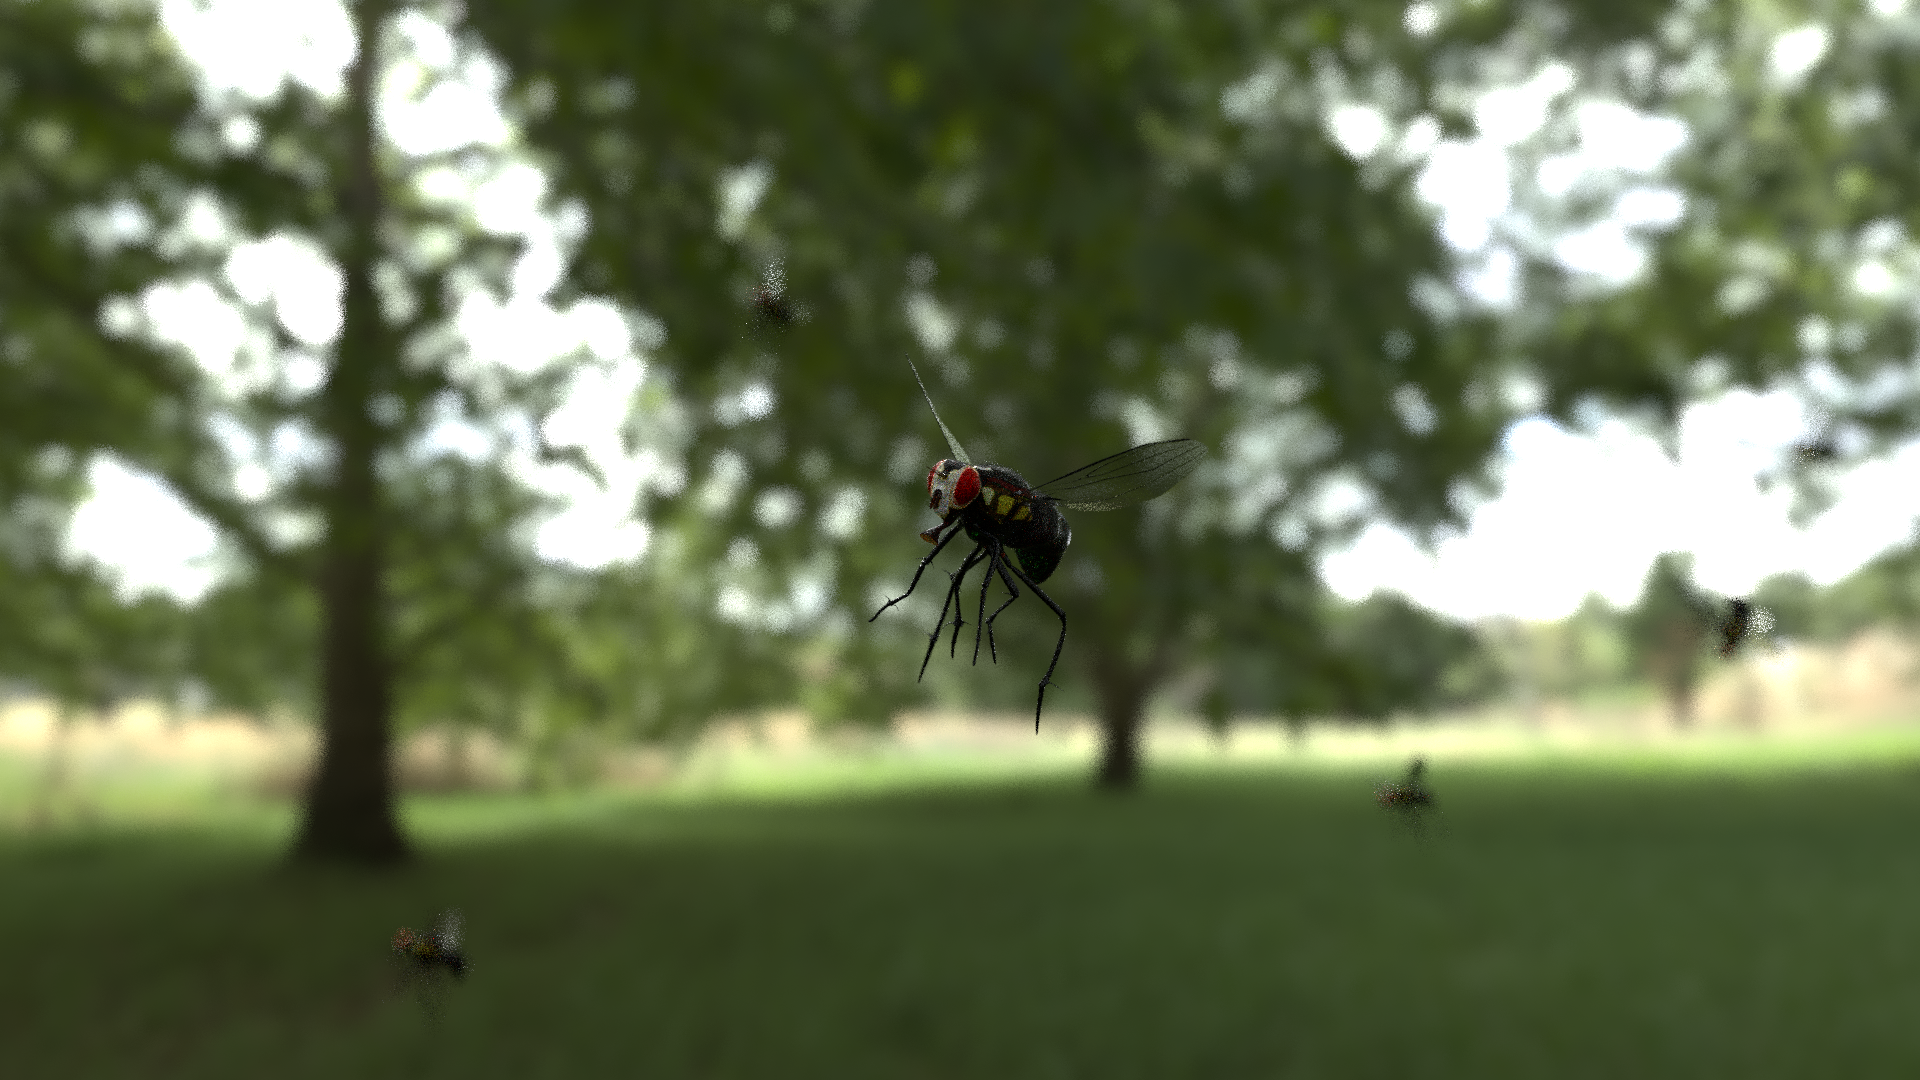 swarming flies  preview image 2